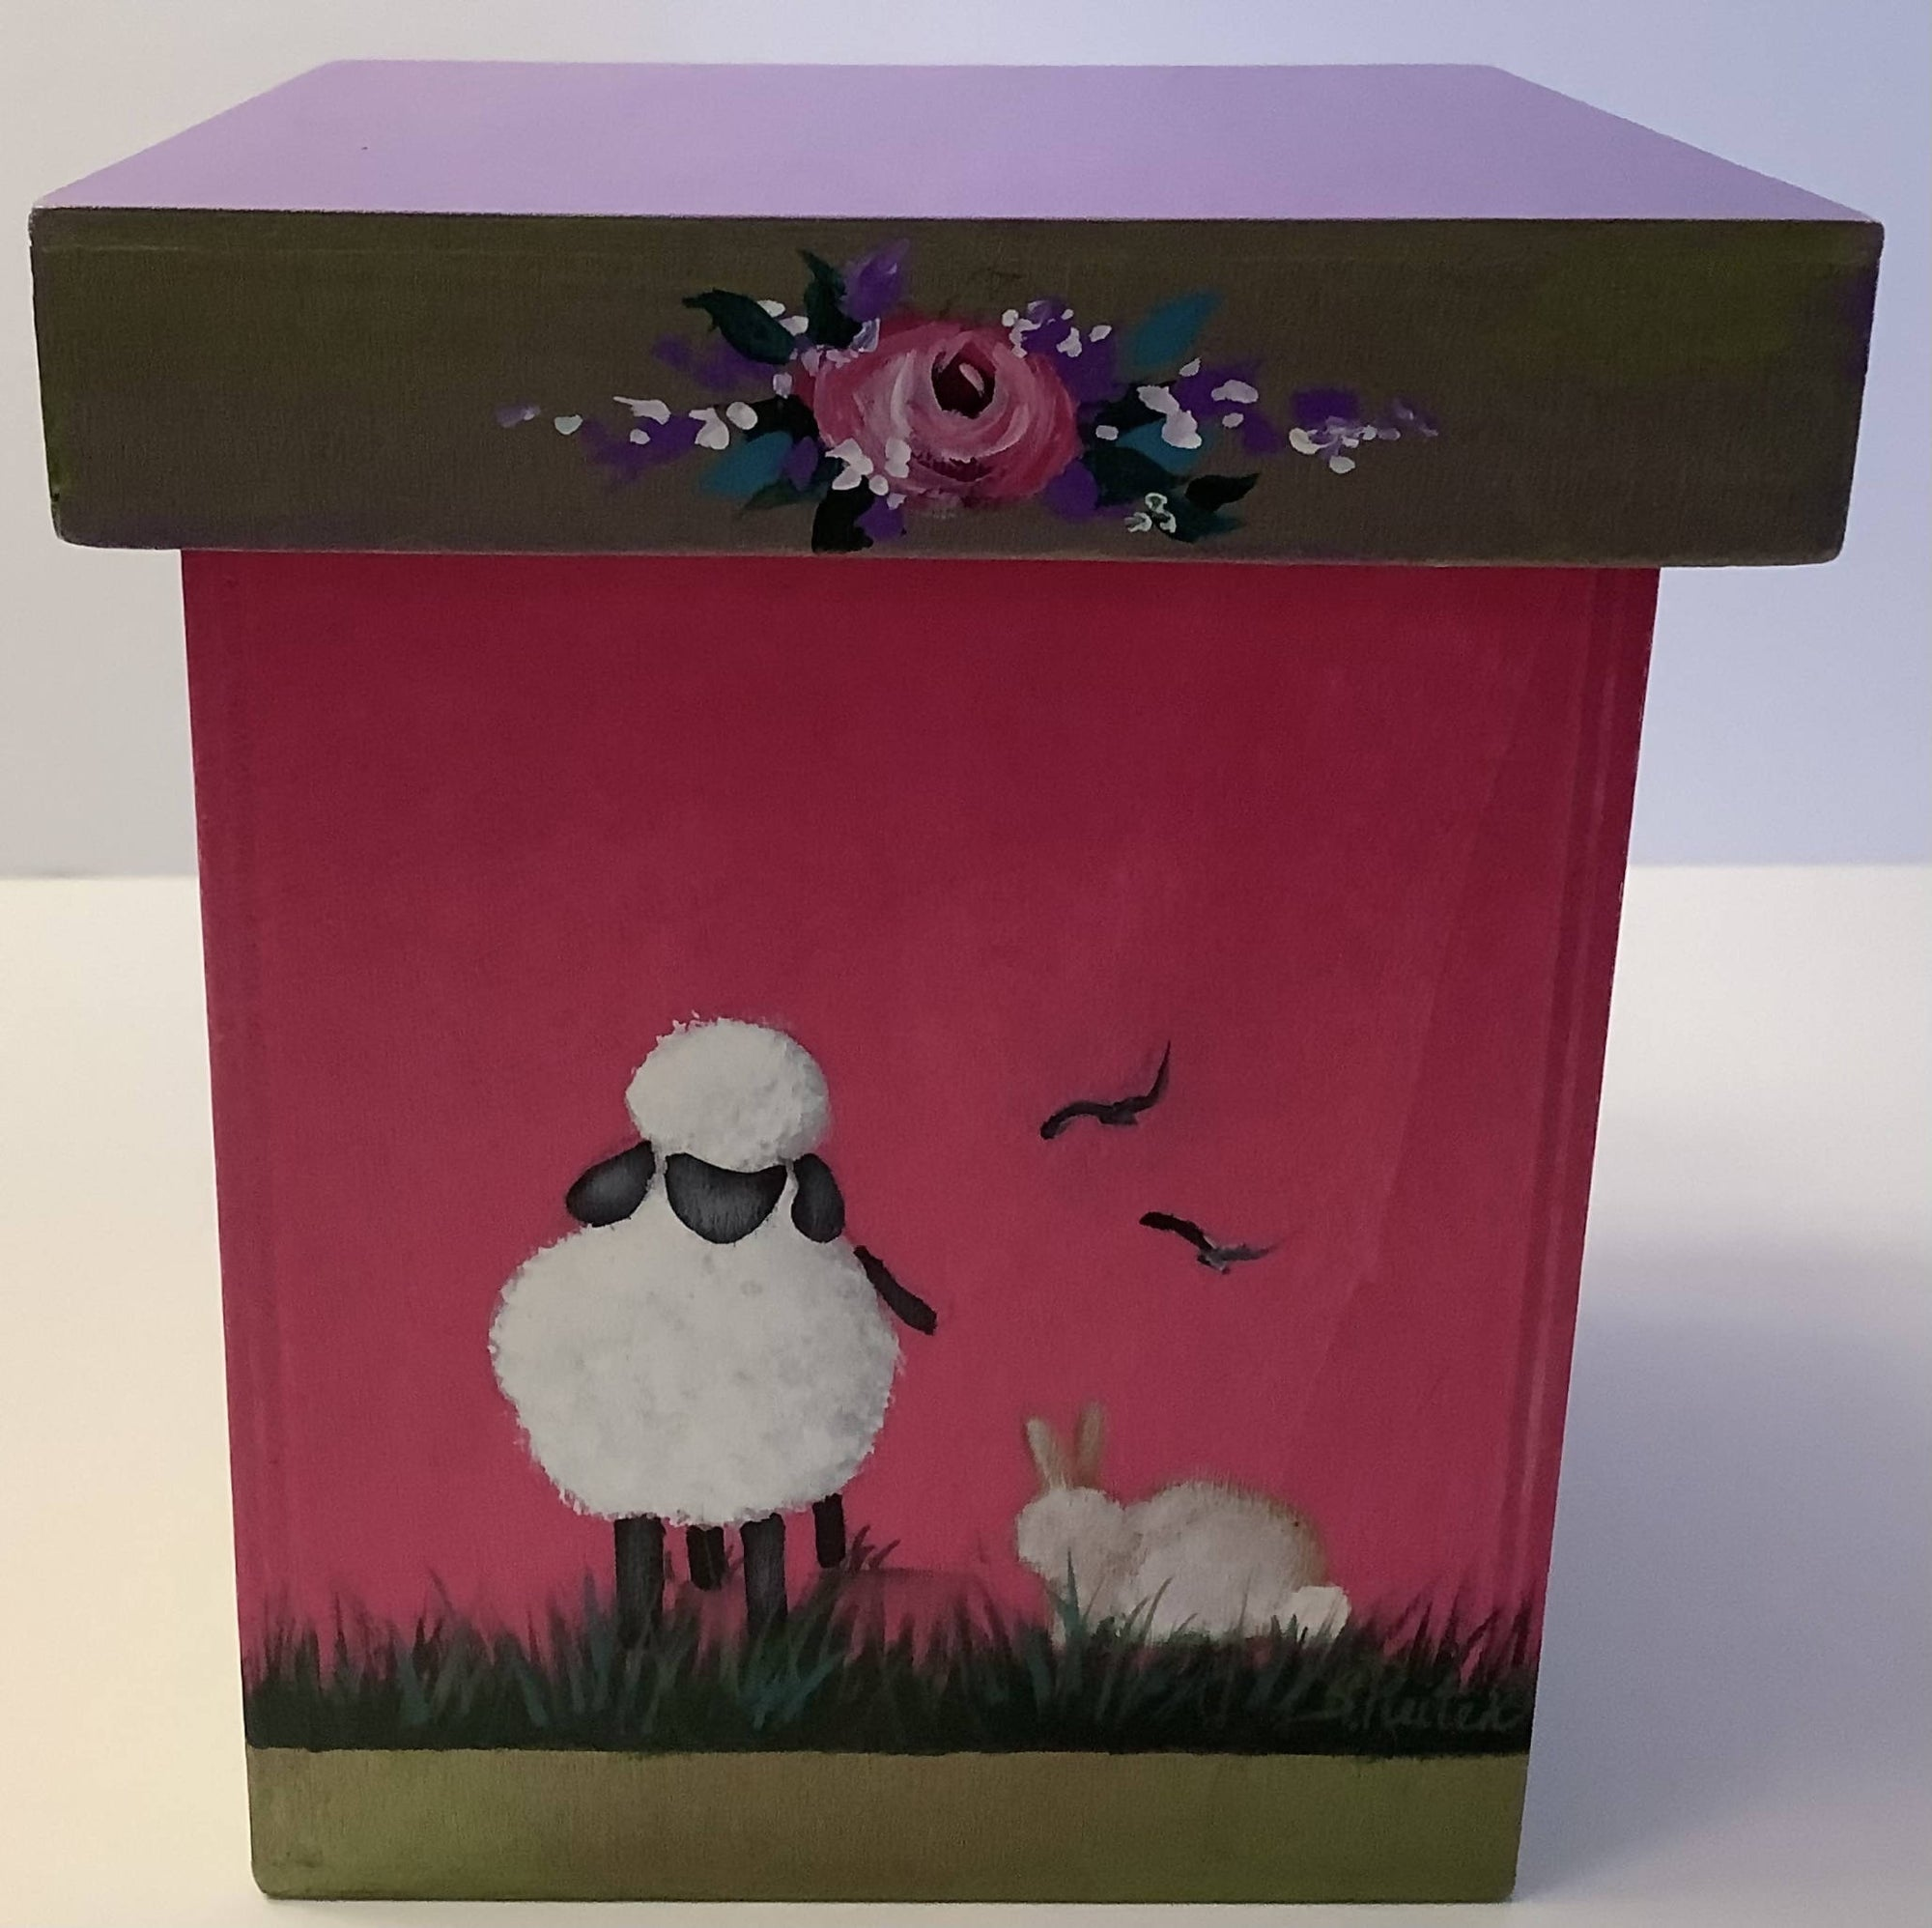 Small Wooden Box Perfect for Spring. Hand Painted on 4 Sides With Different Lambs and Bunnies.